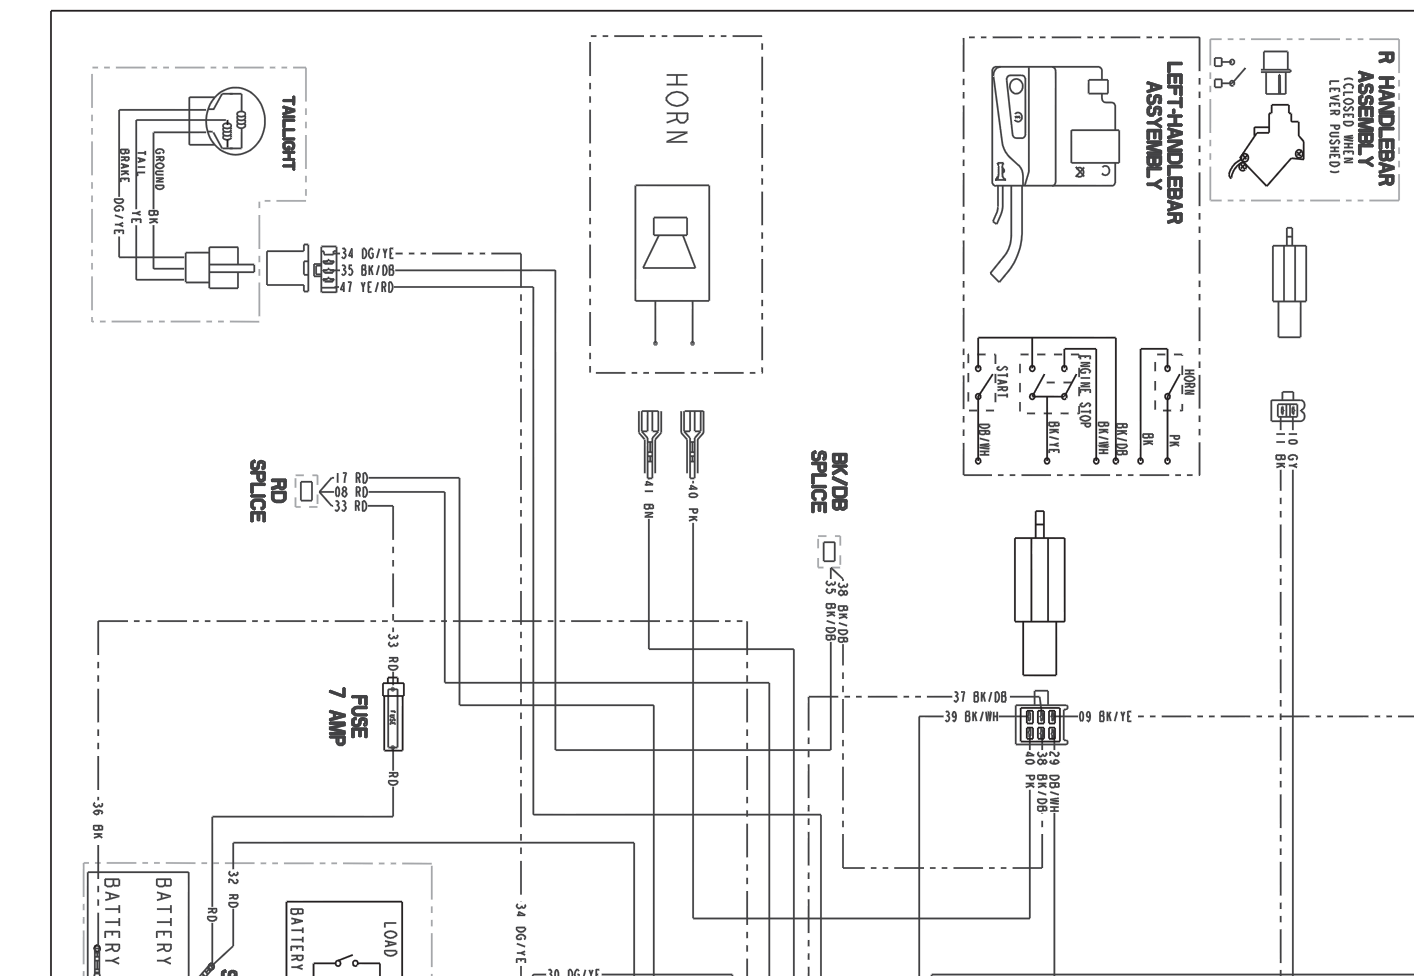 2004 Polaris Sportsman 400 Wiring Diagram | Wiring Liry on polaris ignition wiring diagram, polaris atv carburetor adjustment, polaris ev will not charge, polaris scrambler 400 wiring diagram, polaris explorer 400 wiring diagram, polaris solenoid wiring diagram, polaris engine diagram, polaris indy 400 wiring diagram, polaris carburetor diagram, polaris 90 wiring diagram, polaris 600 wiring diagram, polaris choke cable parts, polaris parts diagram, polaris 700 atv battery, polaris atv diagrams, polaris ranger 700 wiring diagram, polaris ranger 400 accessories, polaris phoenix 200 wiring diagram, polaris indy 600 voltage regulator placement, polaris snowmobile wiring diagrams,